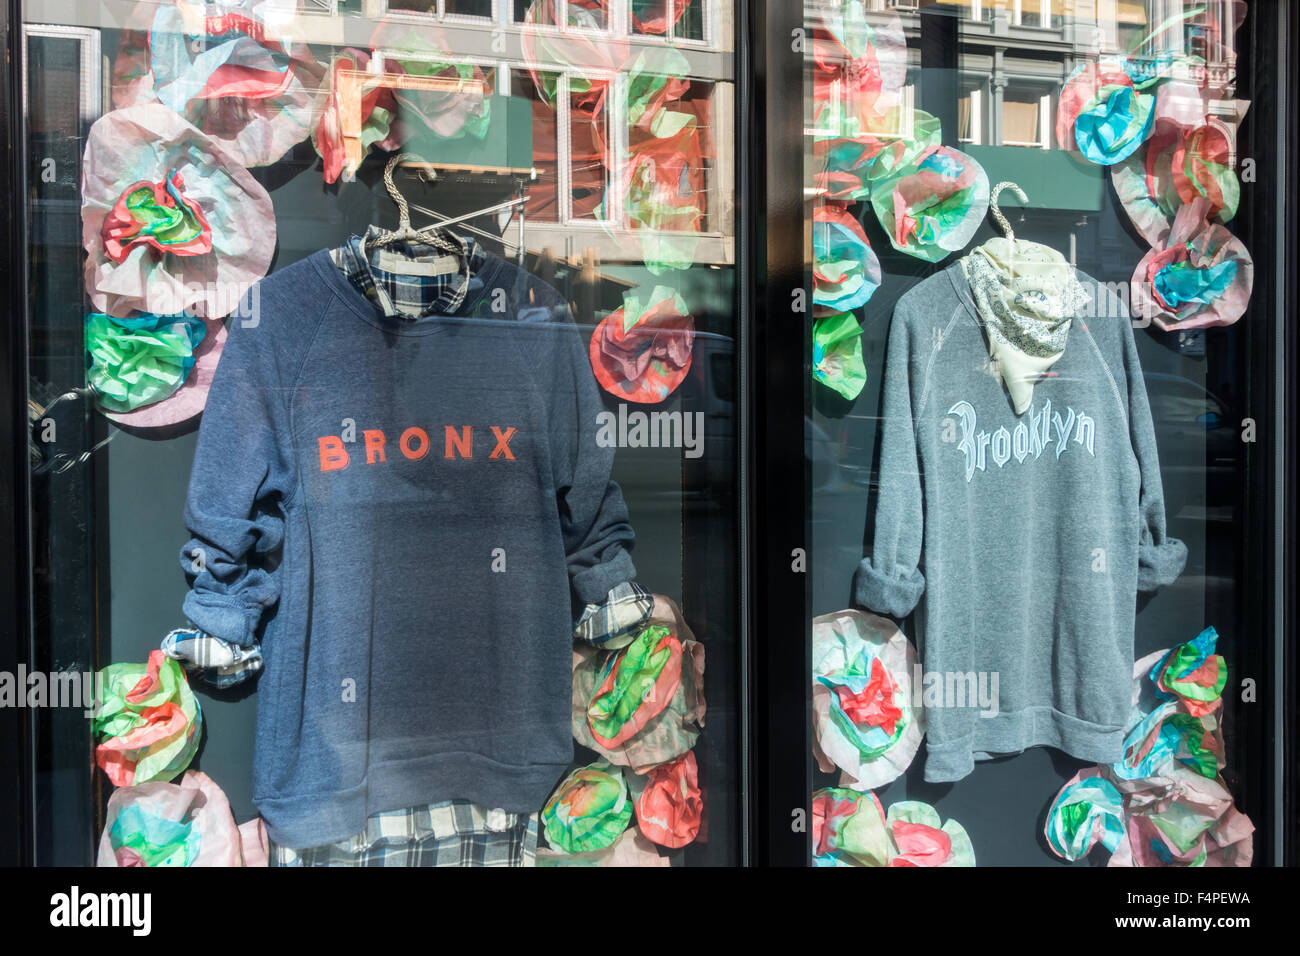 New York sweat shirts labeled Bronx and Brooklyn - Stock Image